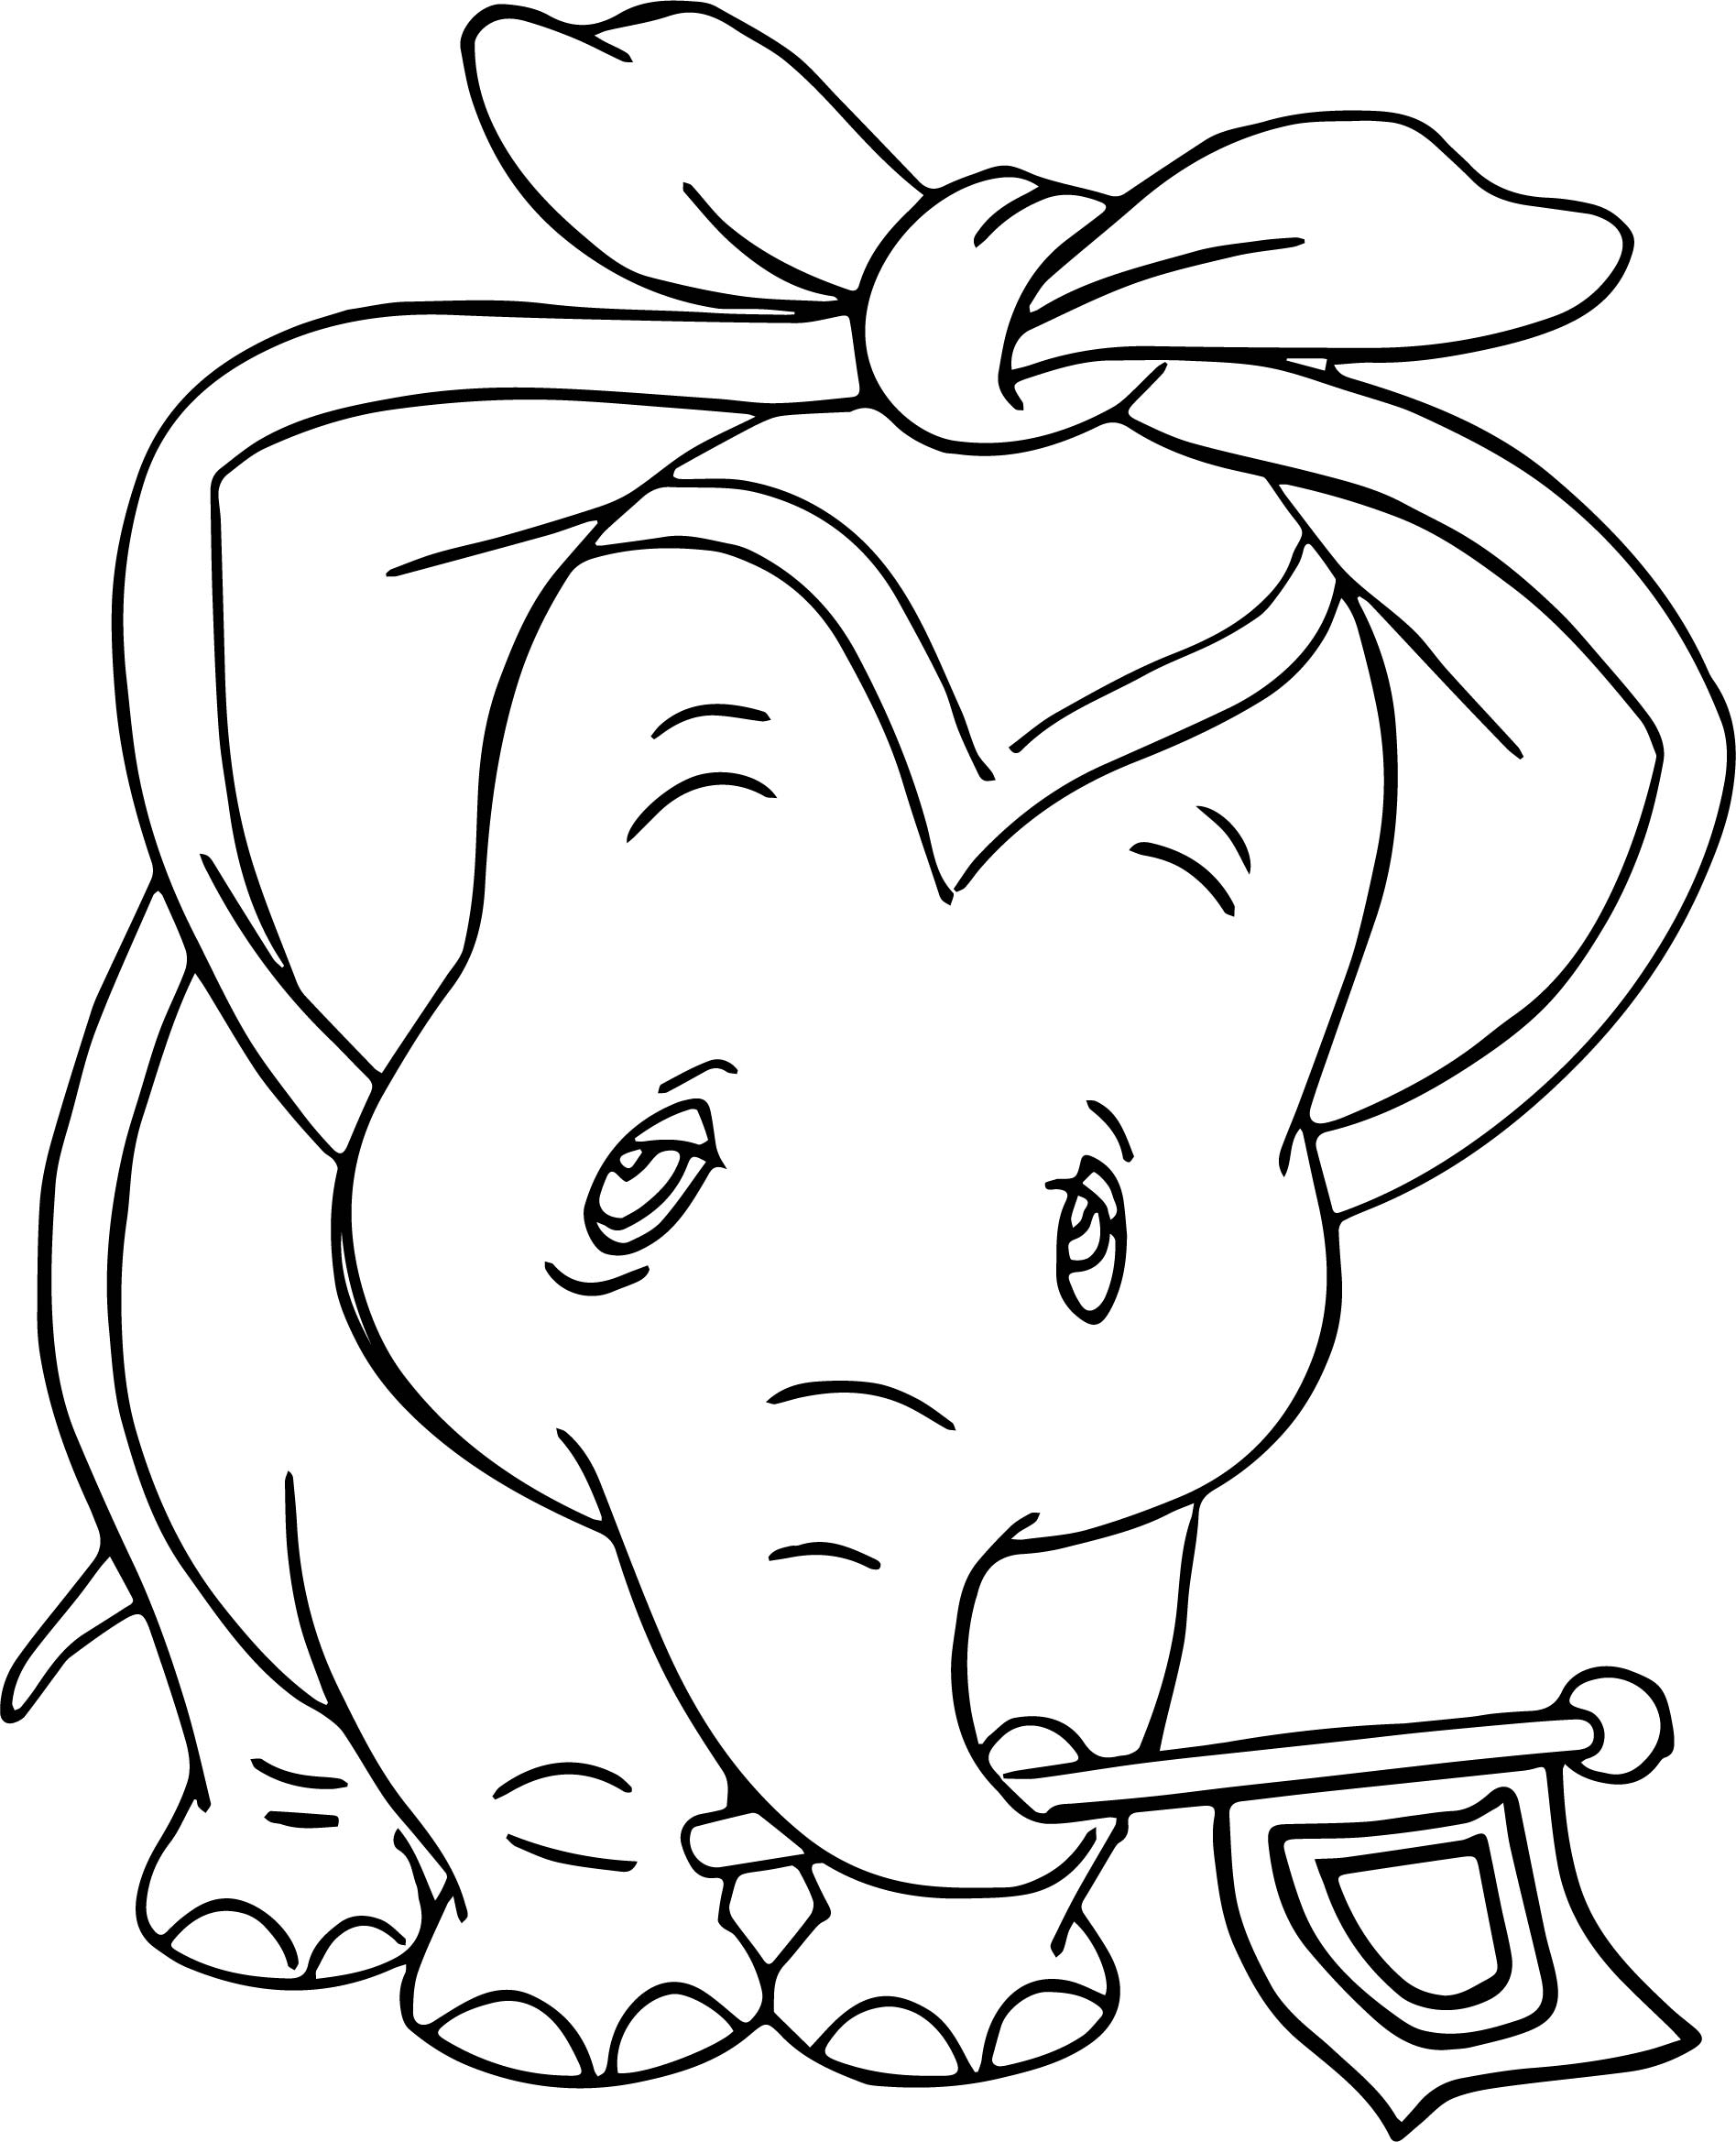 Dumbo Circus Ill Coloring Pages